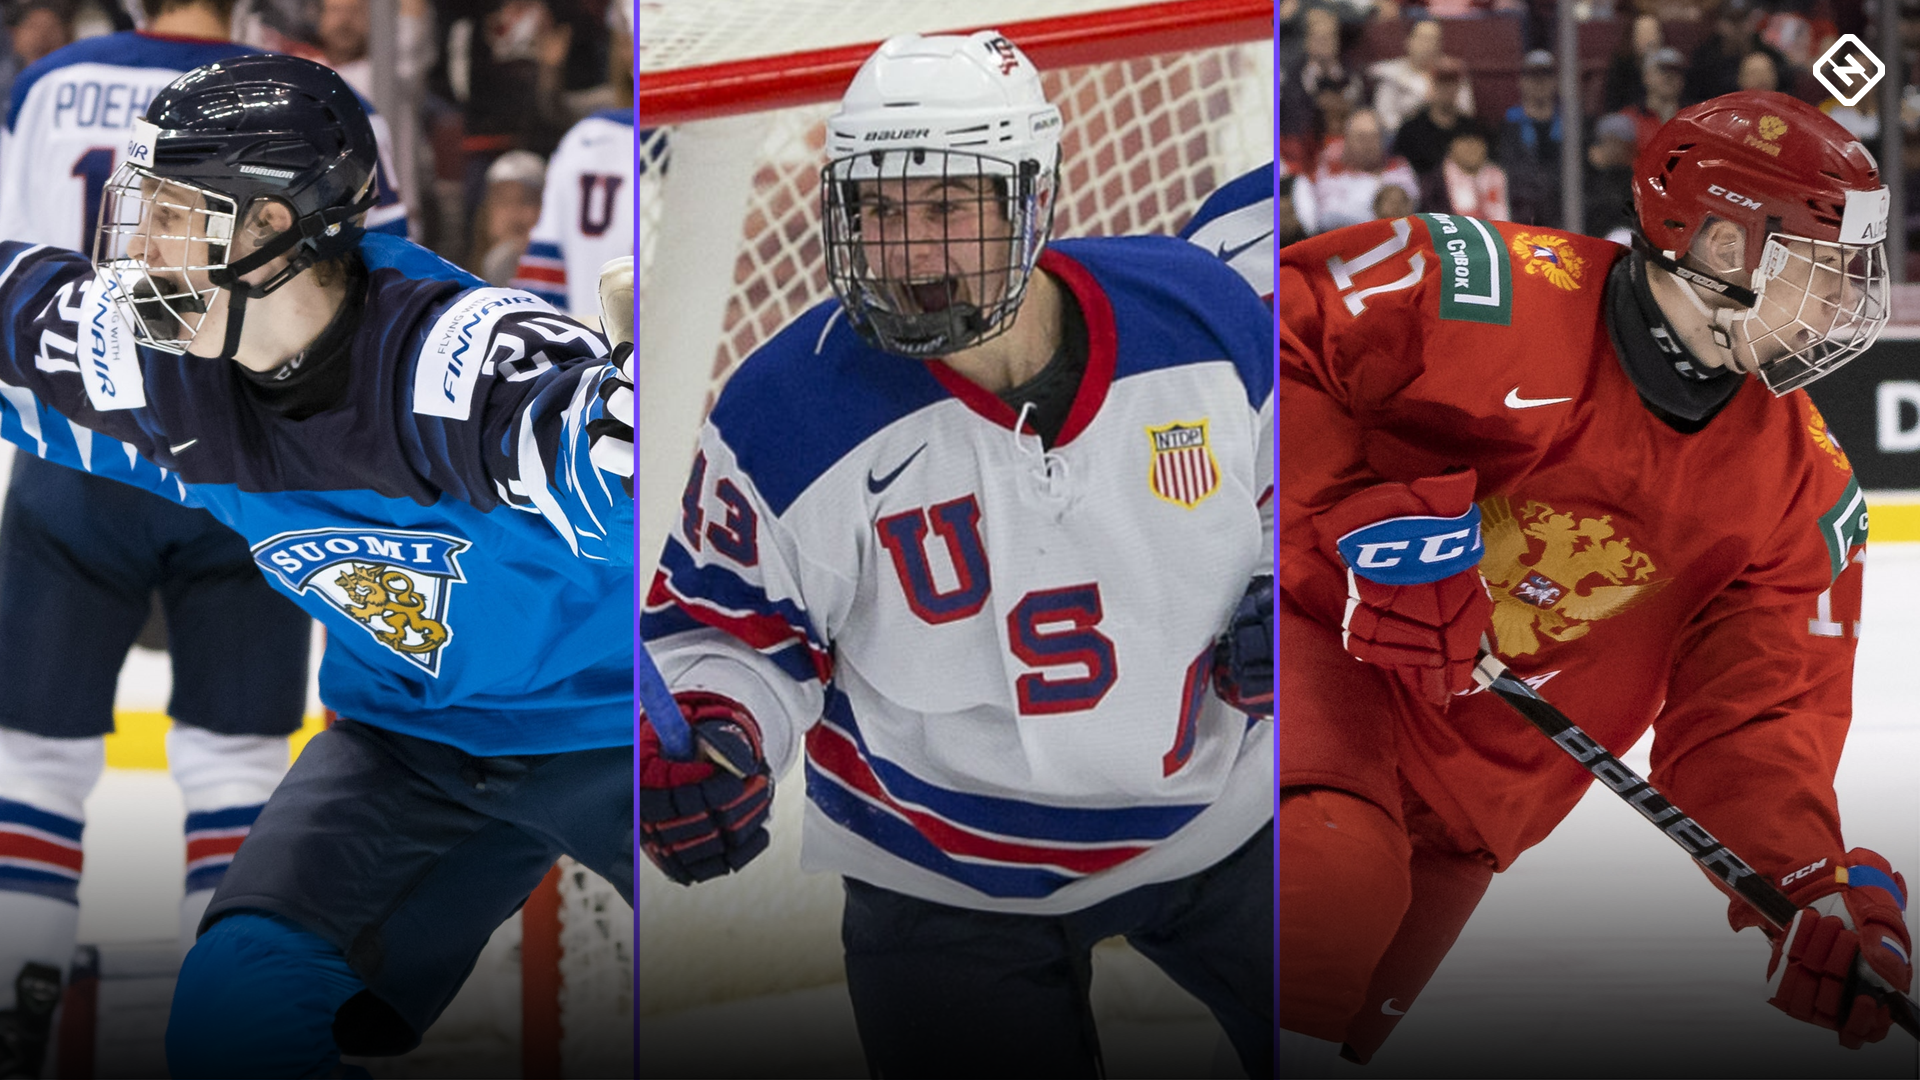 Nhl Draft Big Board Updated Rankings Of Top 31 Prospects In 2019